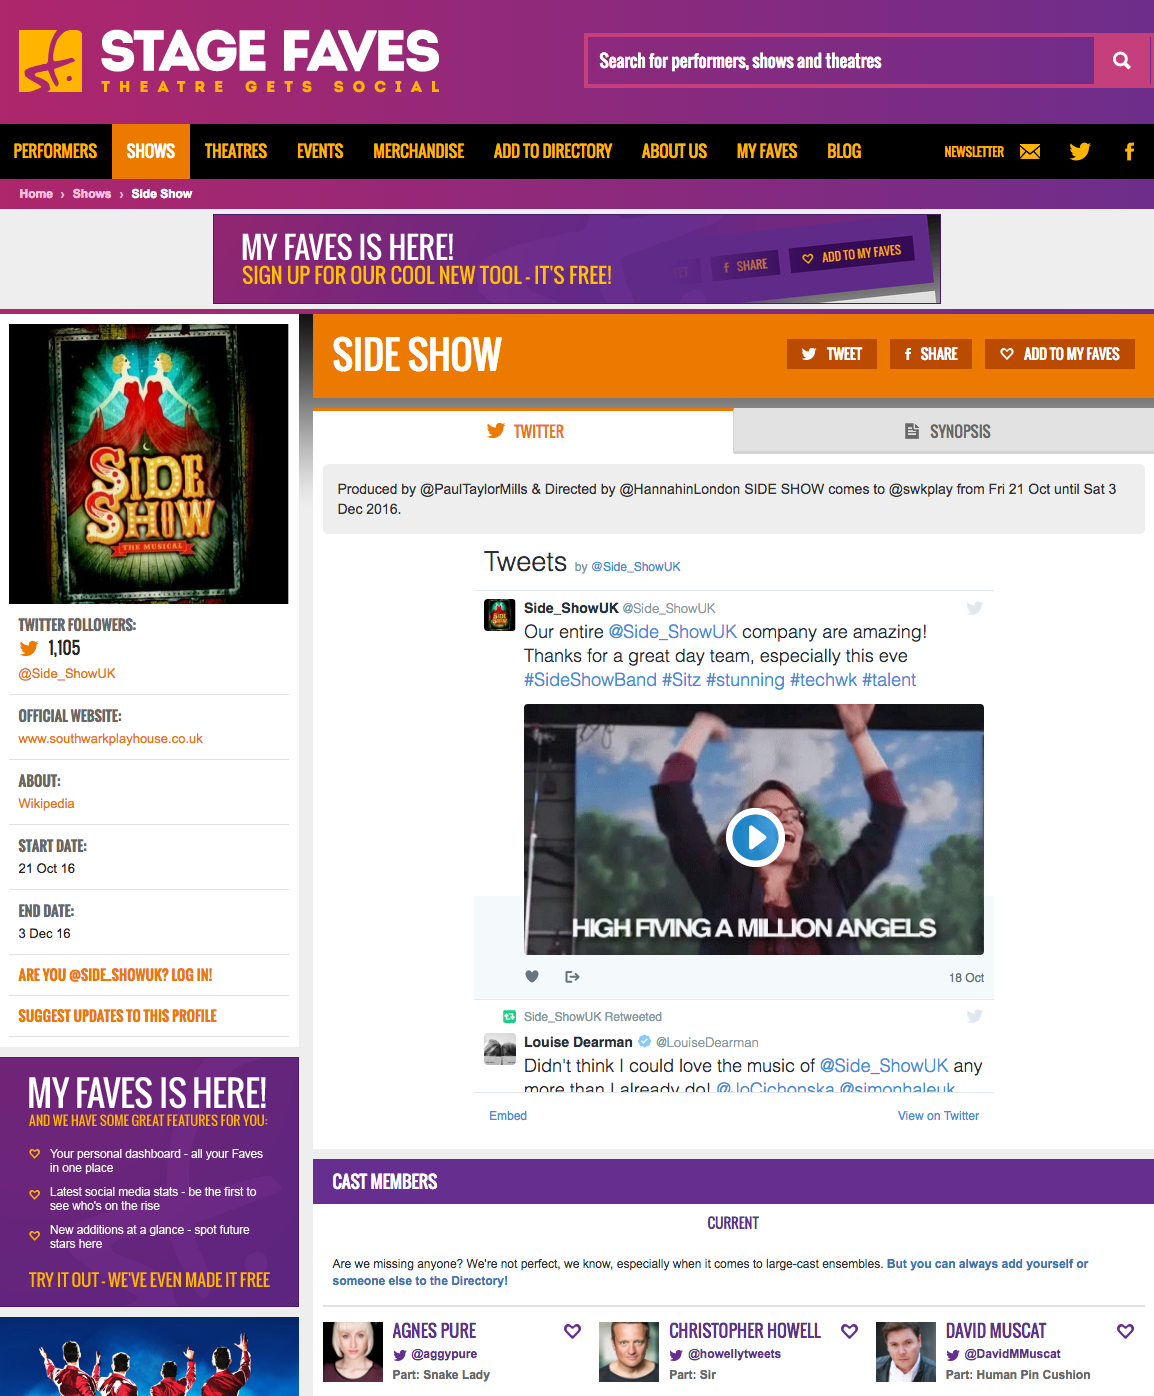 Get all show pics & social media for Side Show & its cast on www.stagefaves.com